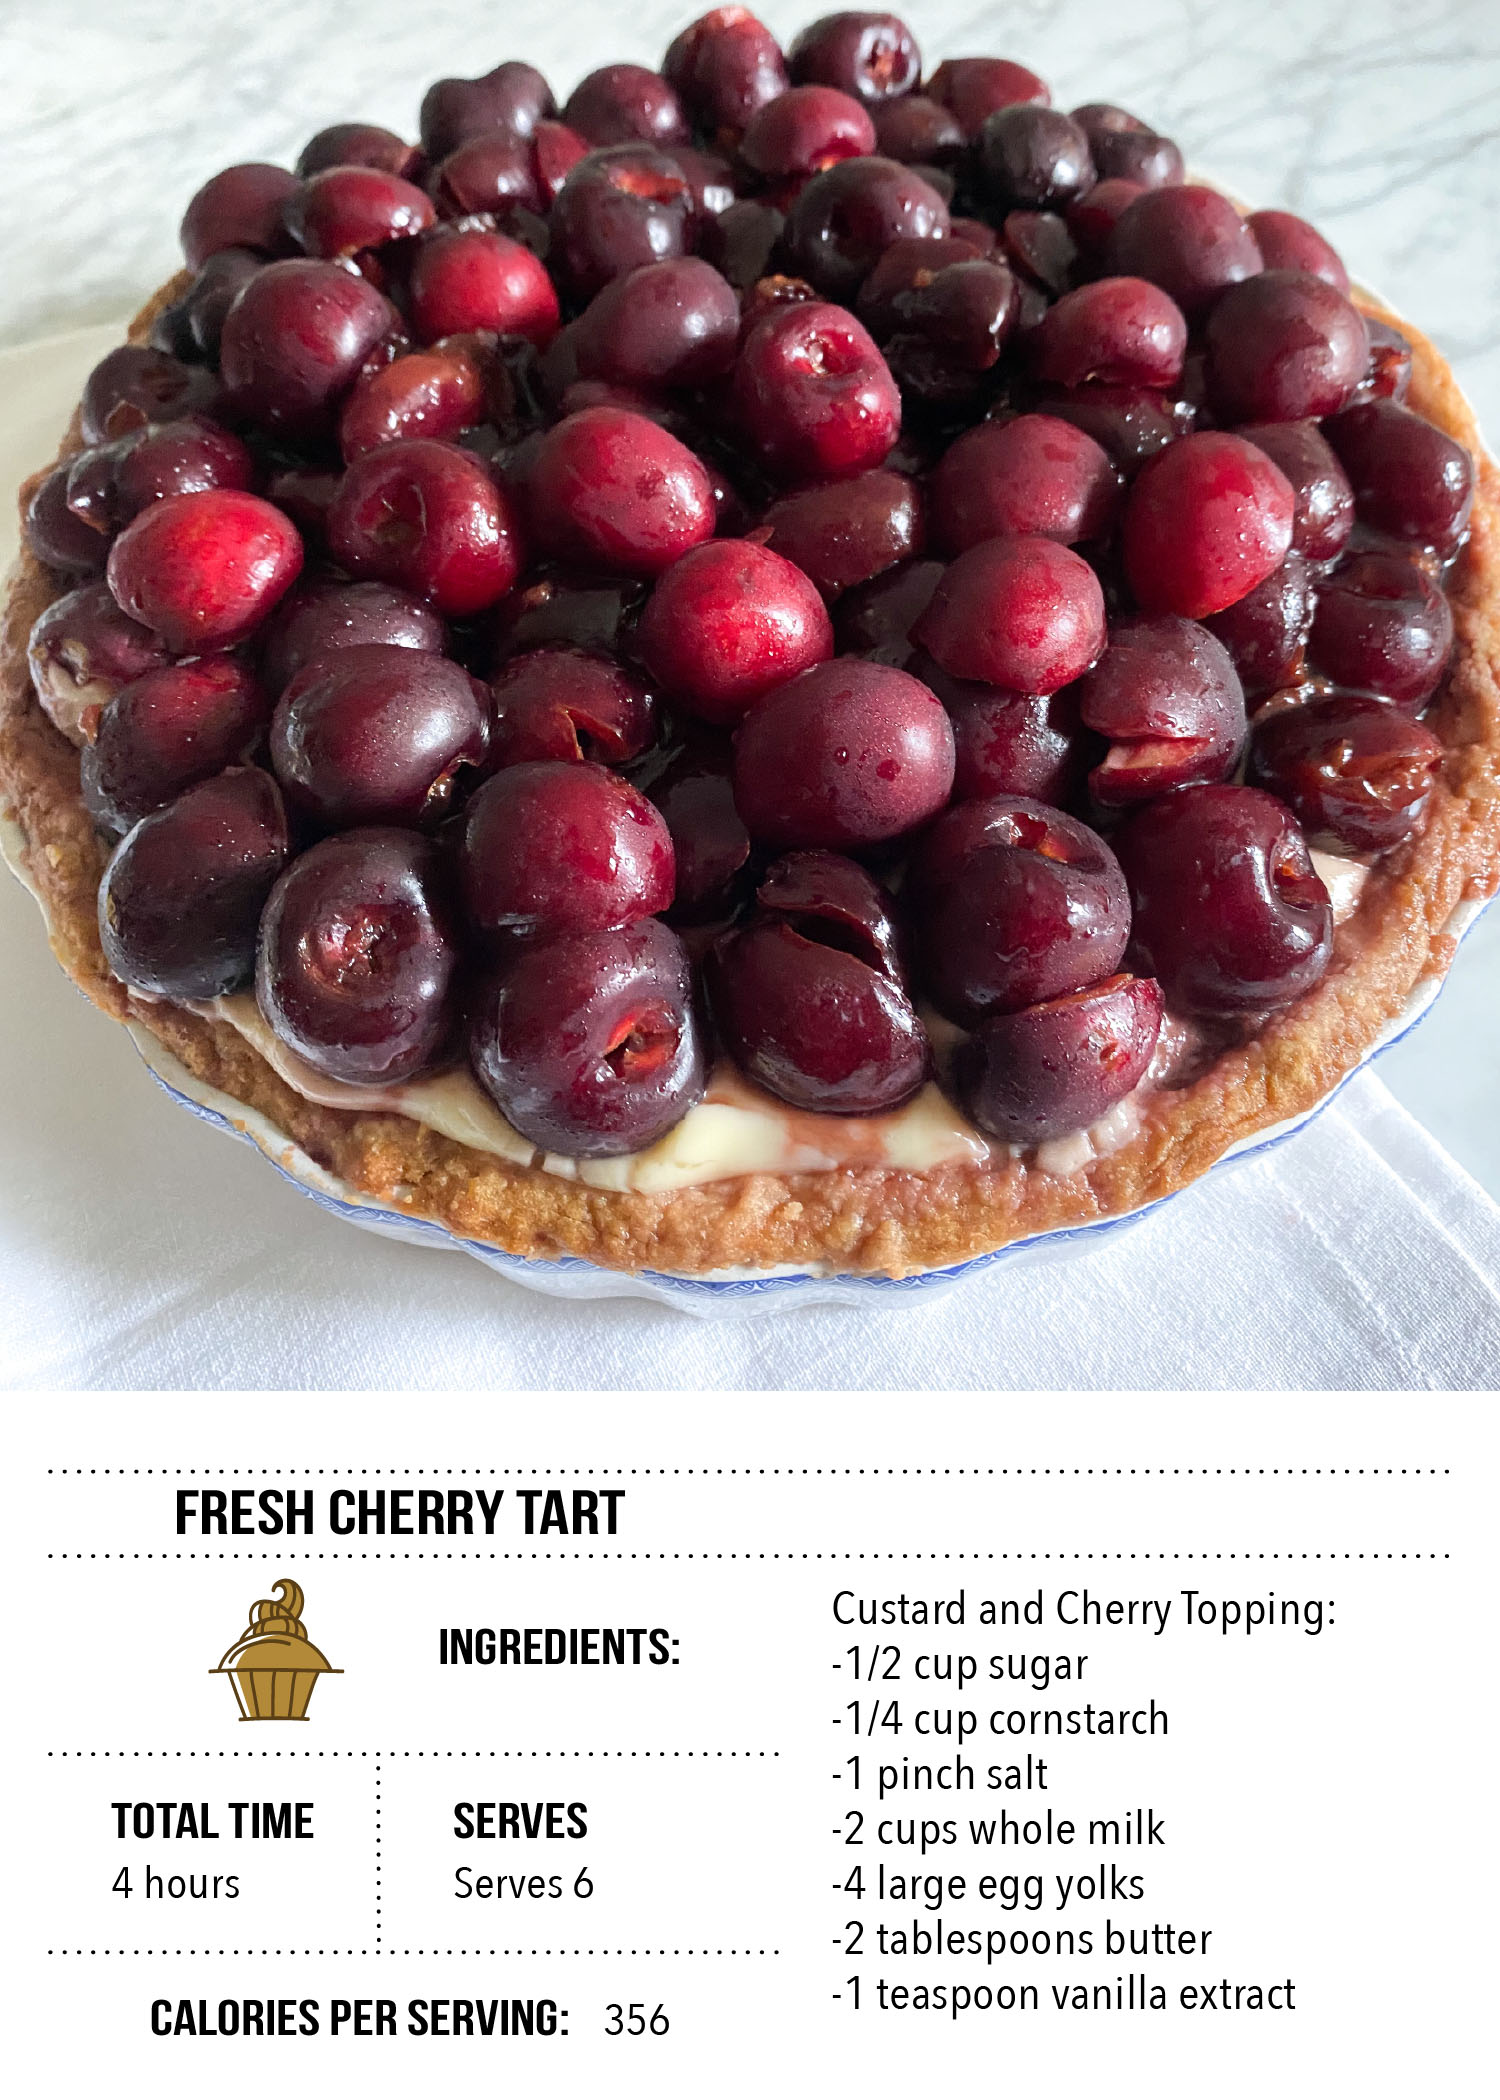 Fresh Cherry Tart Recipe Card